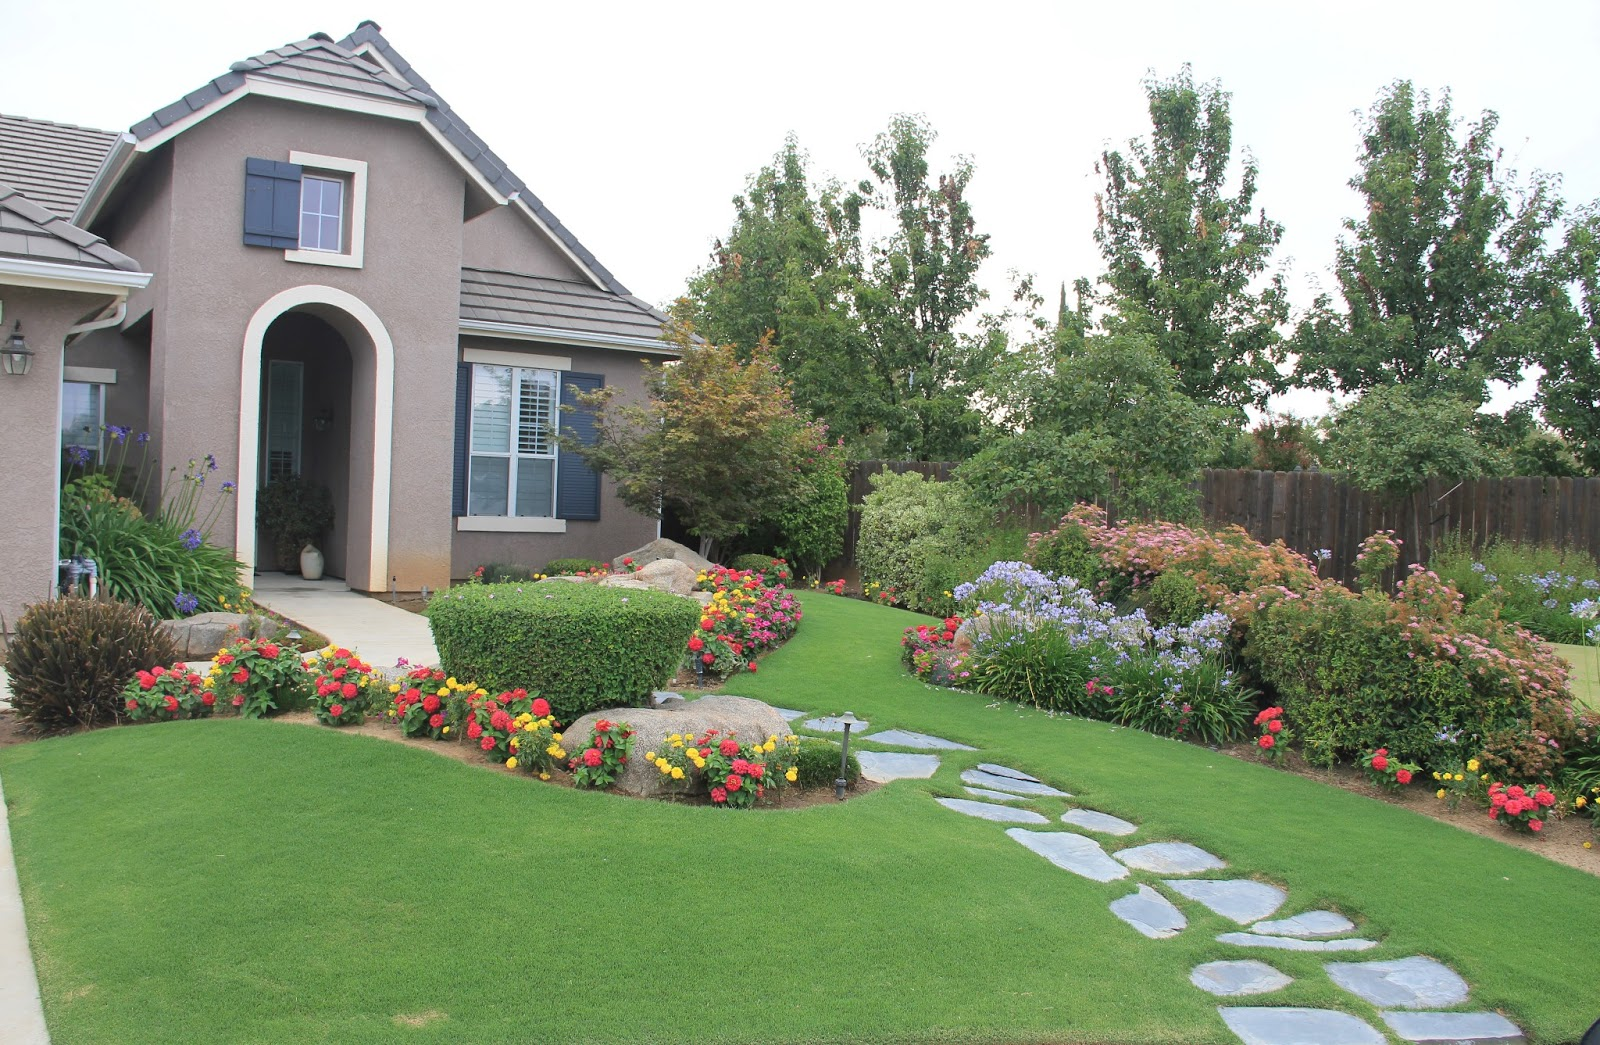 Lawn And Landscape Tips From The Turf Doctor January 2013